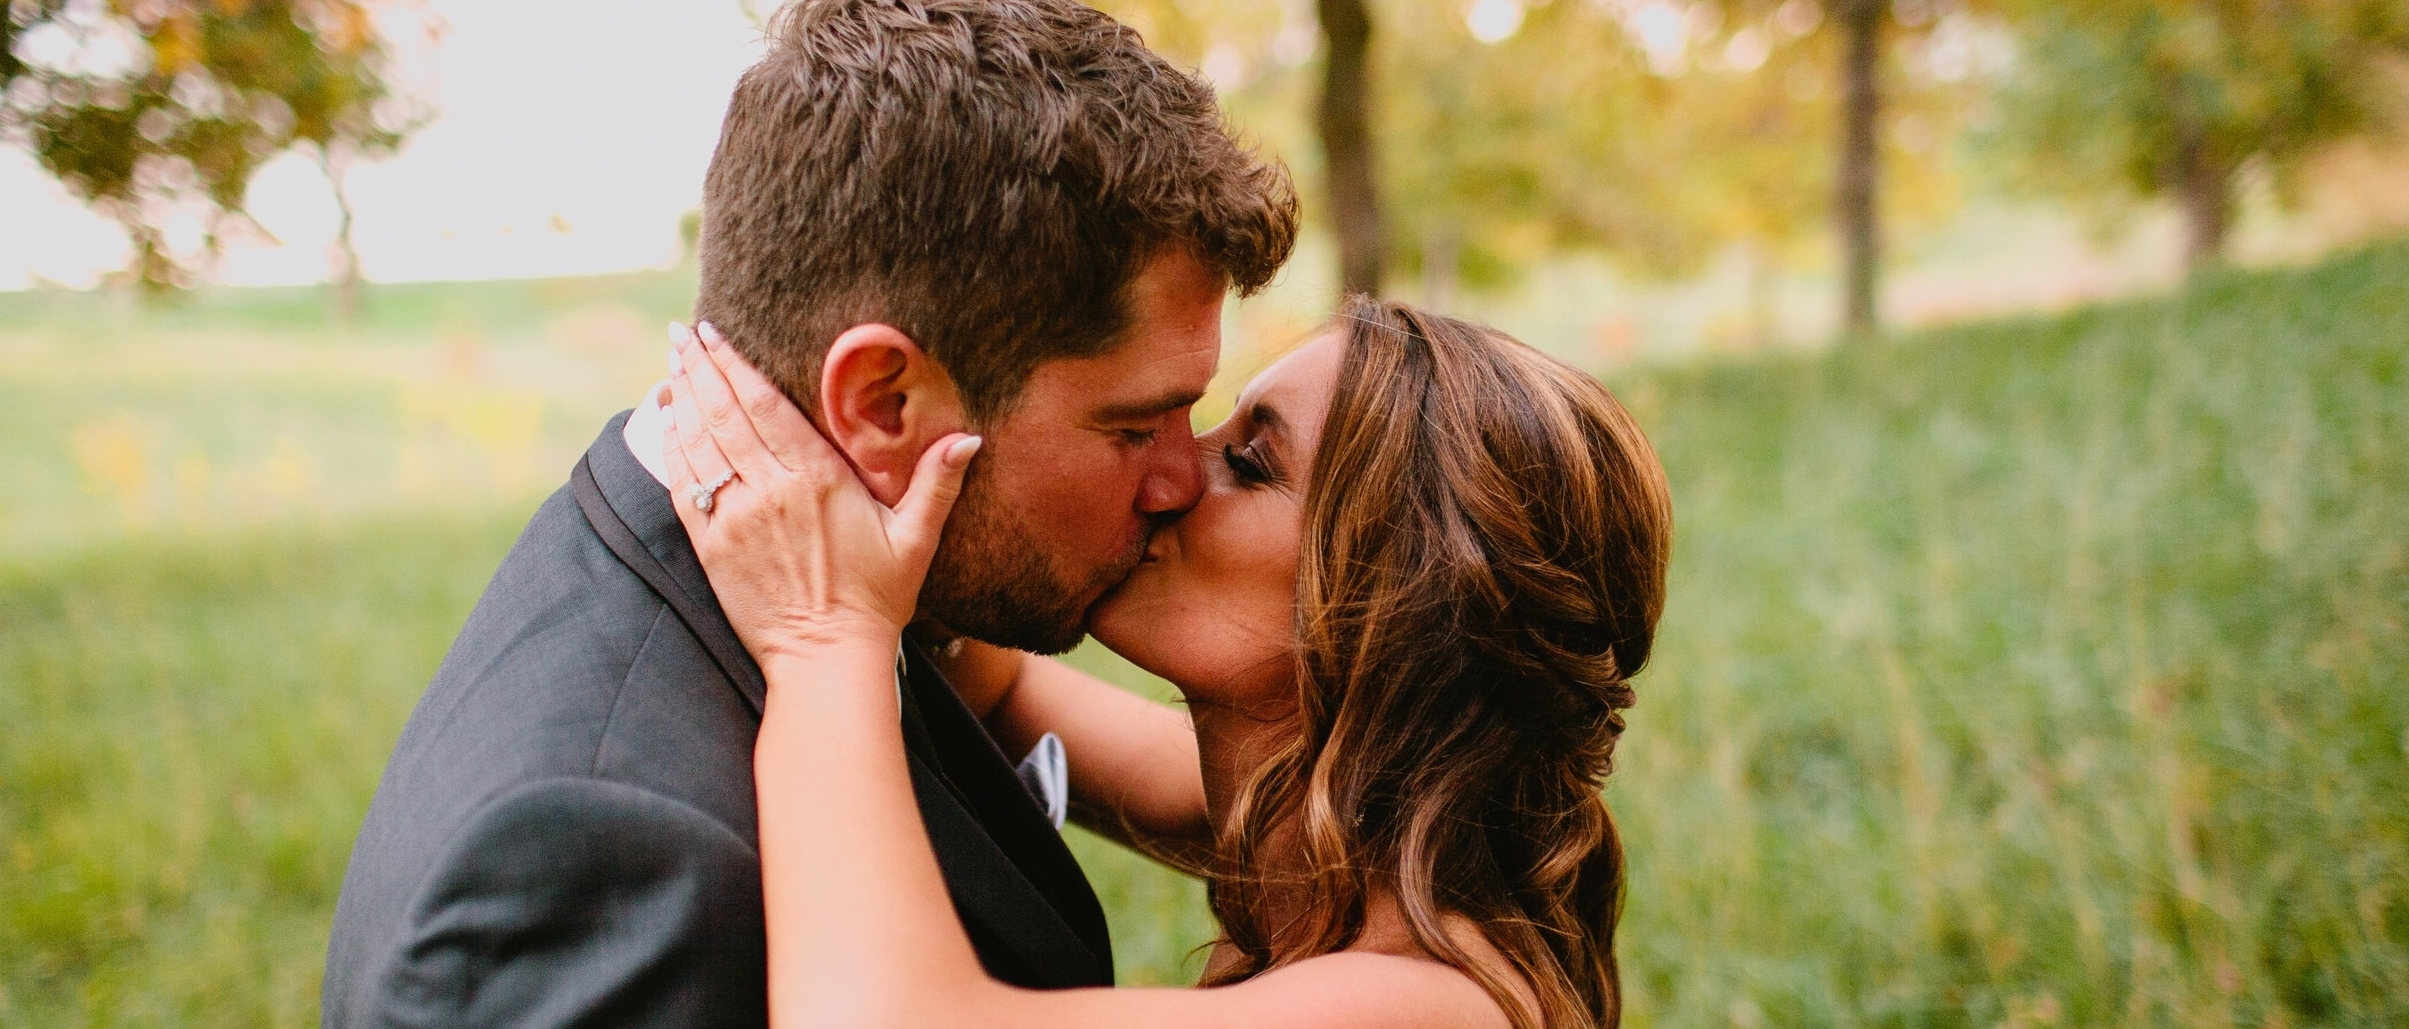 brittany + Chad - Omaha, NE Photography: Michael Rowley